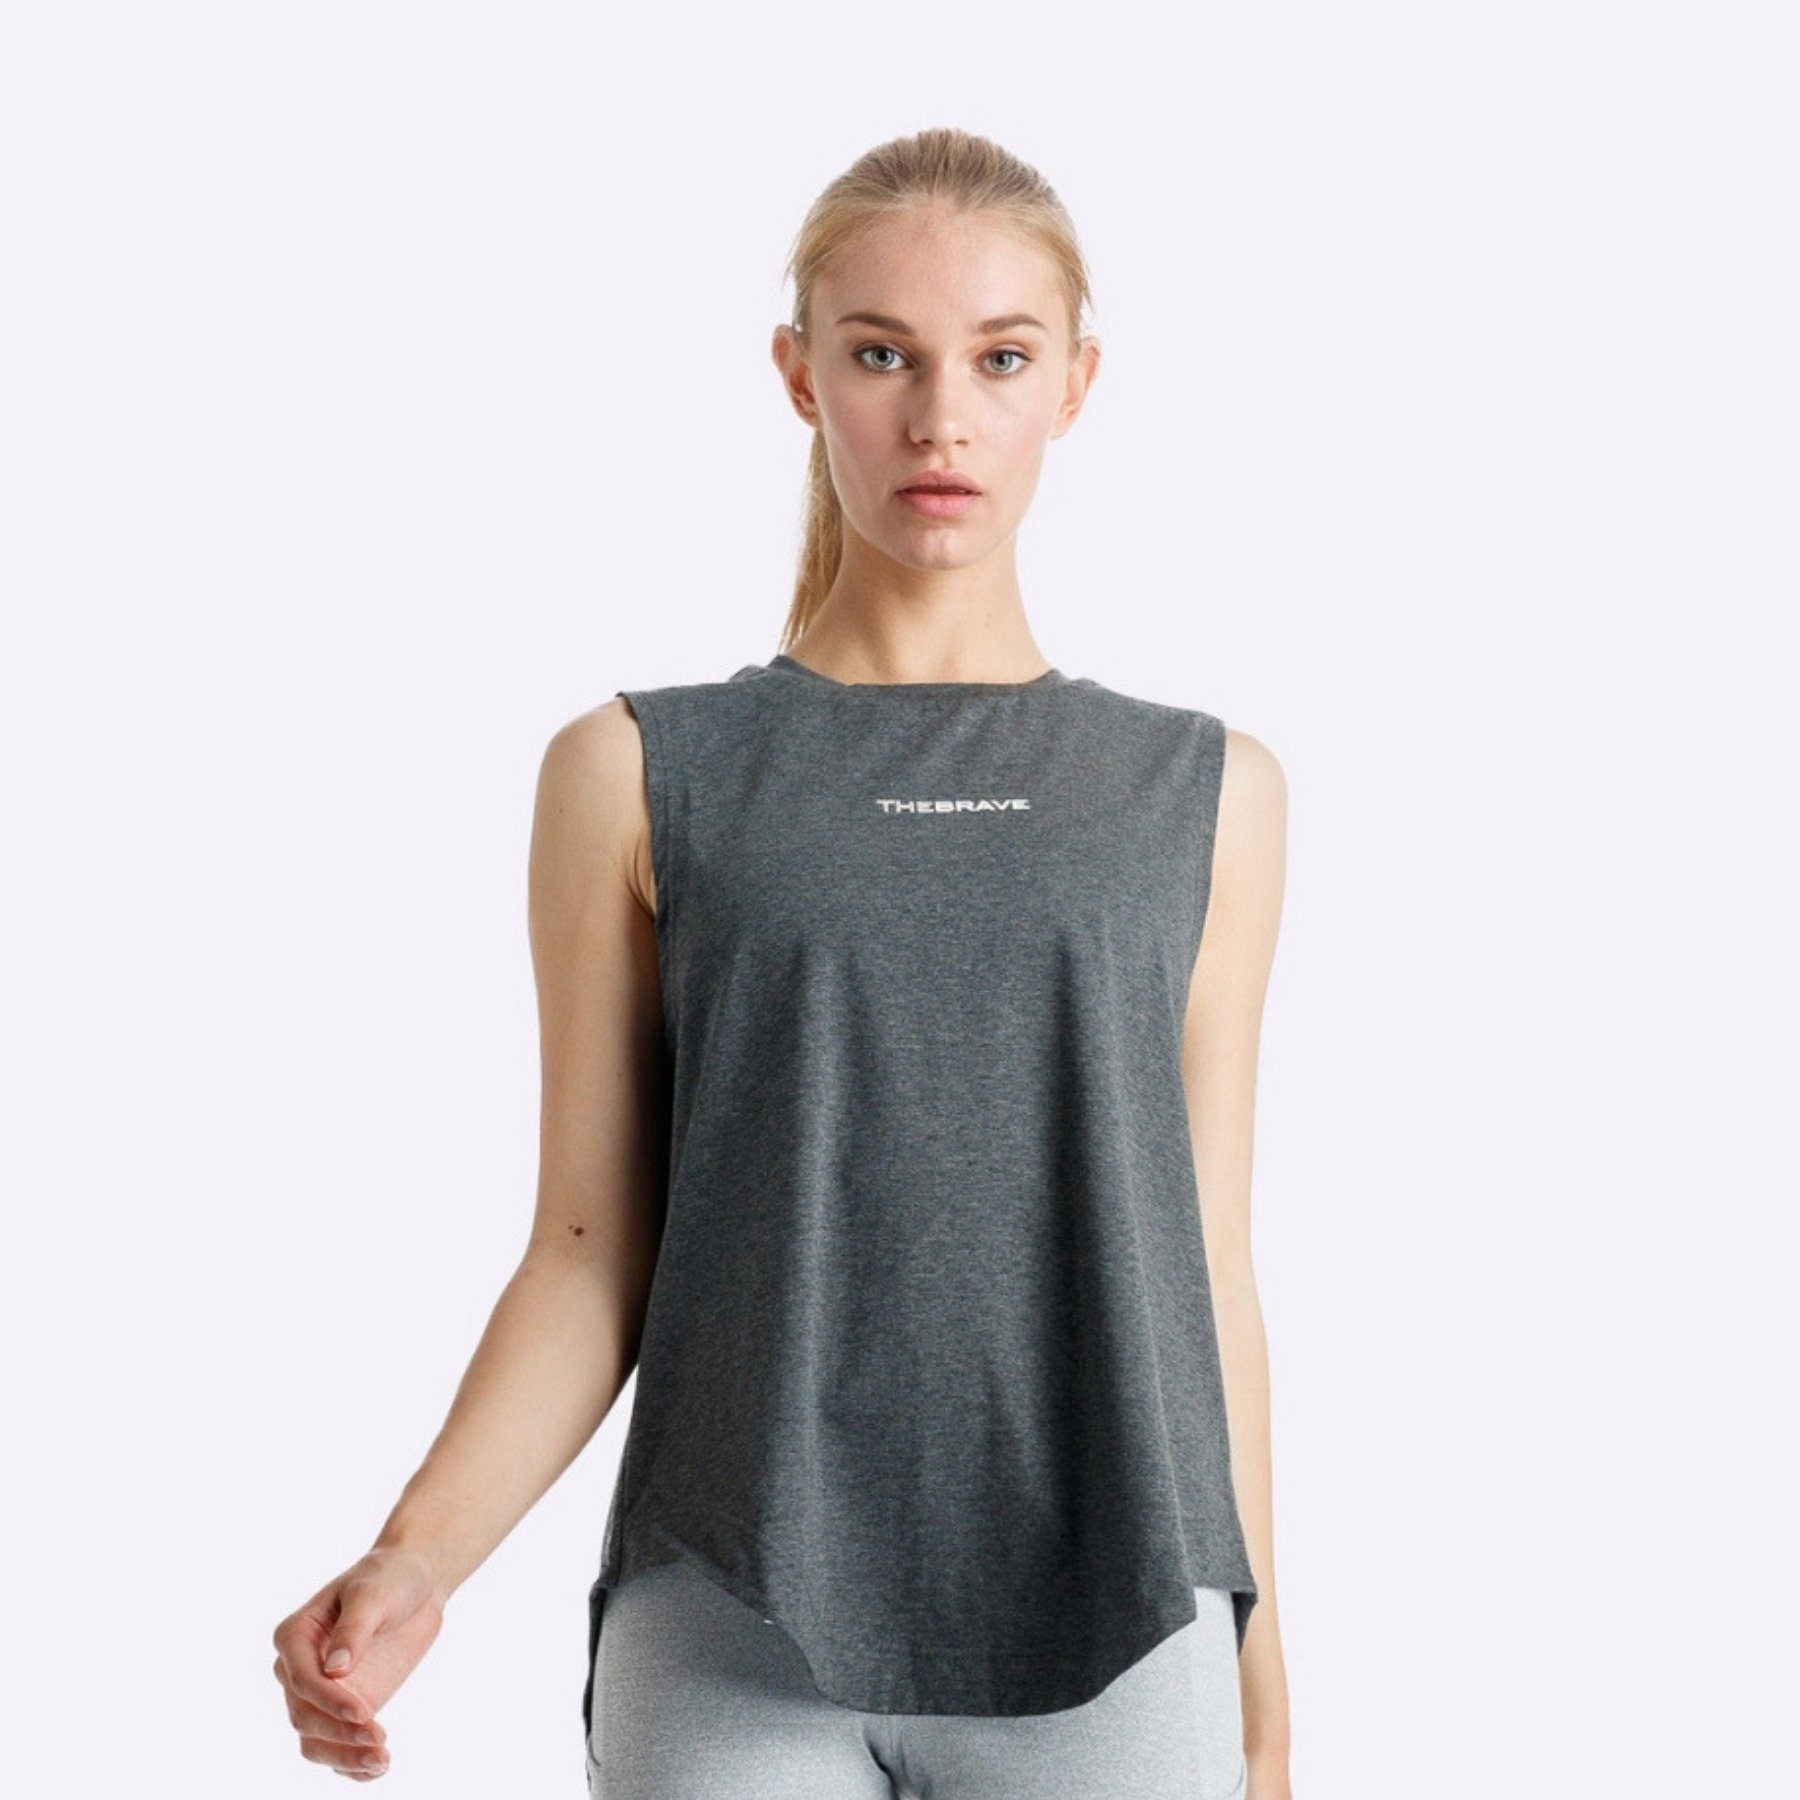 The Brave - Windrifter Tank - Charcoal Marle